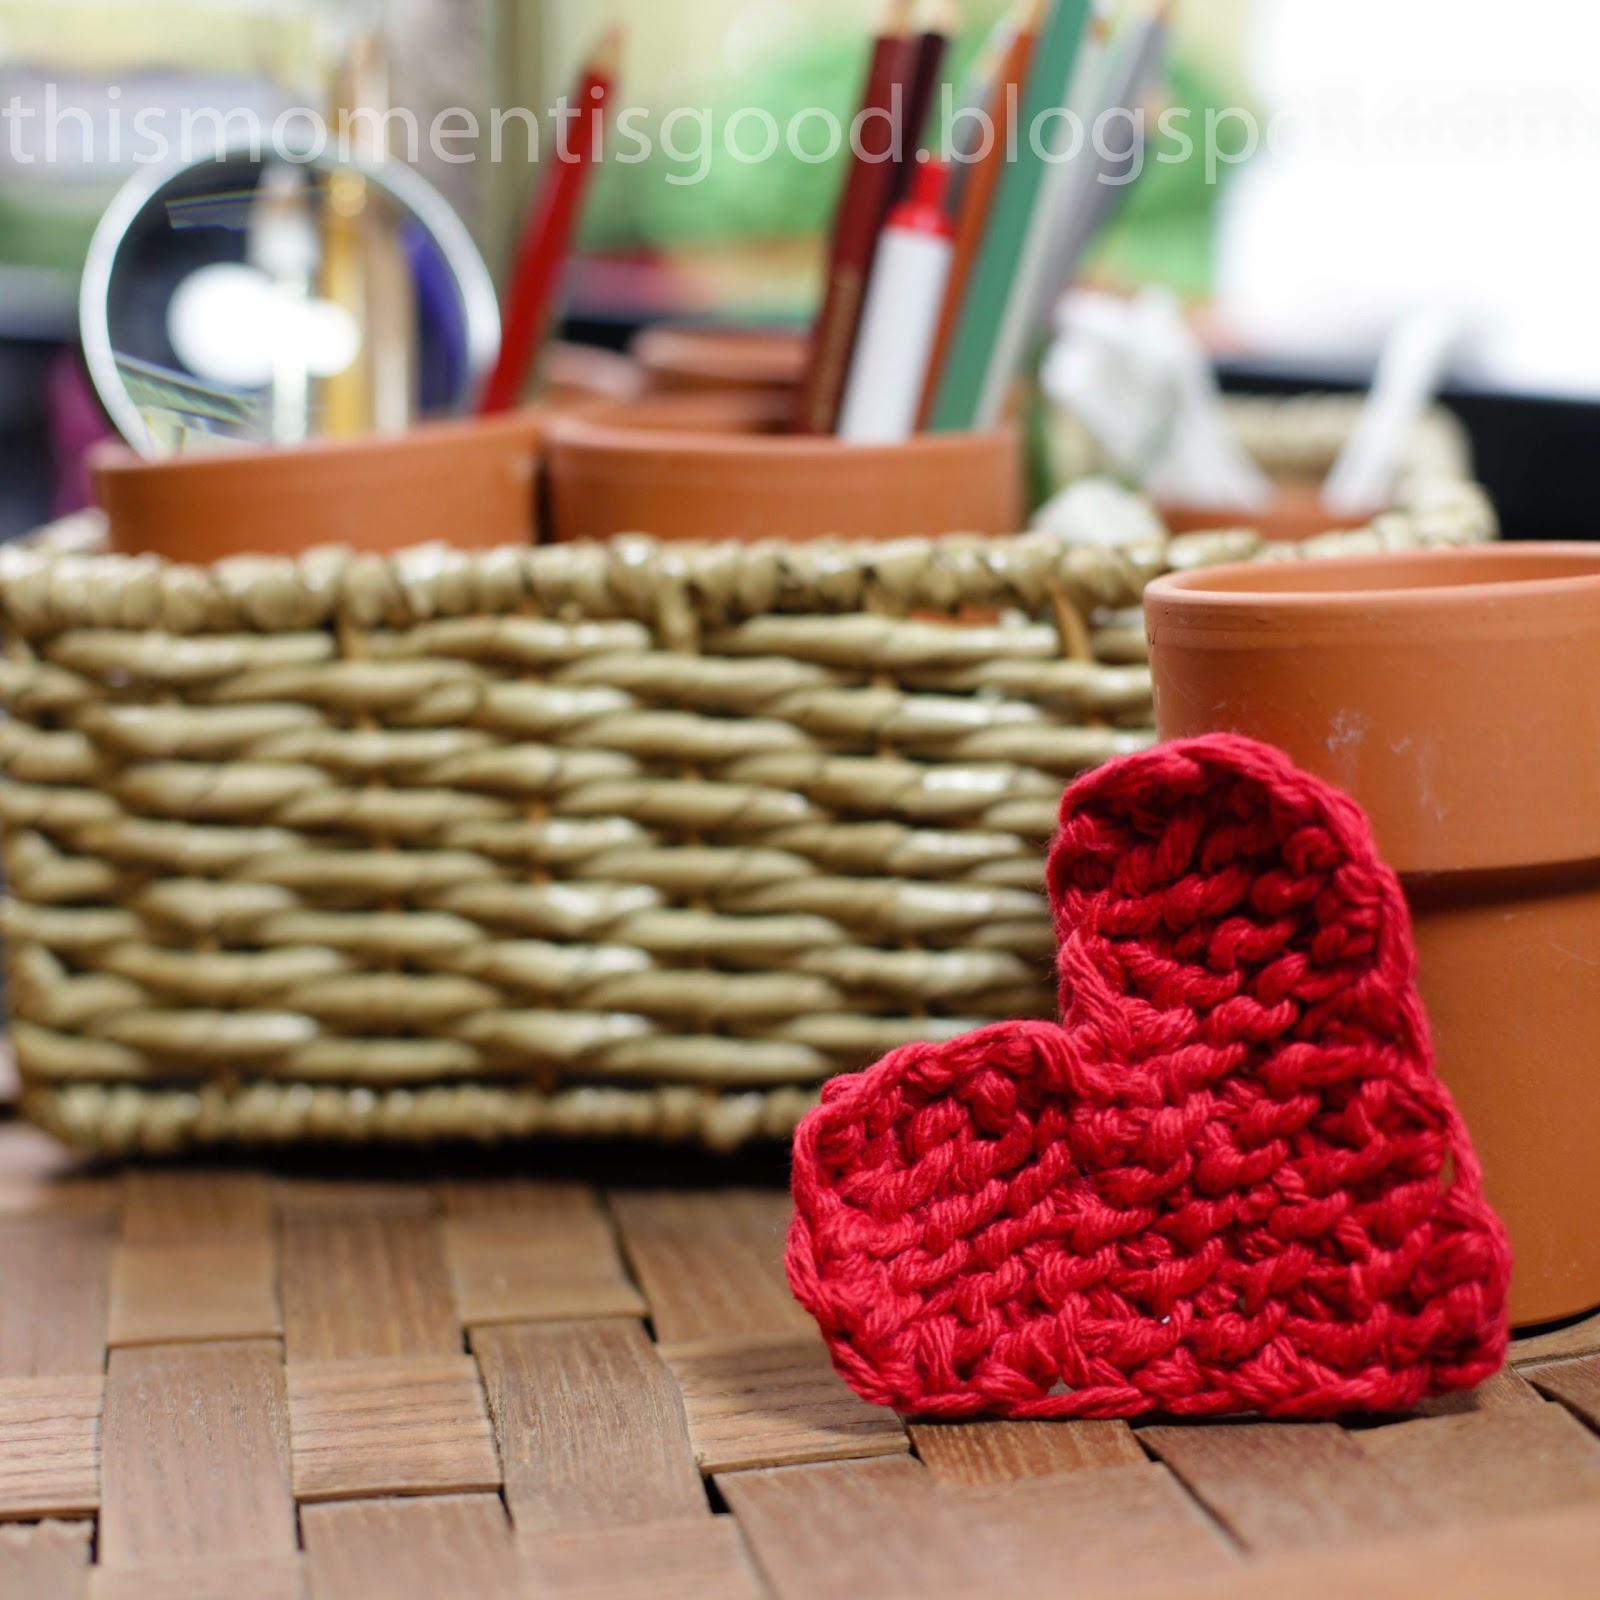 Loom Knitting by This Moment is Good!: LOOM KNIT HEART - FREE PATTERN